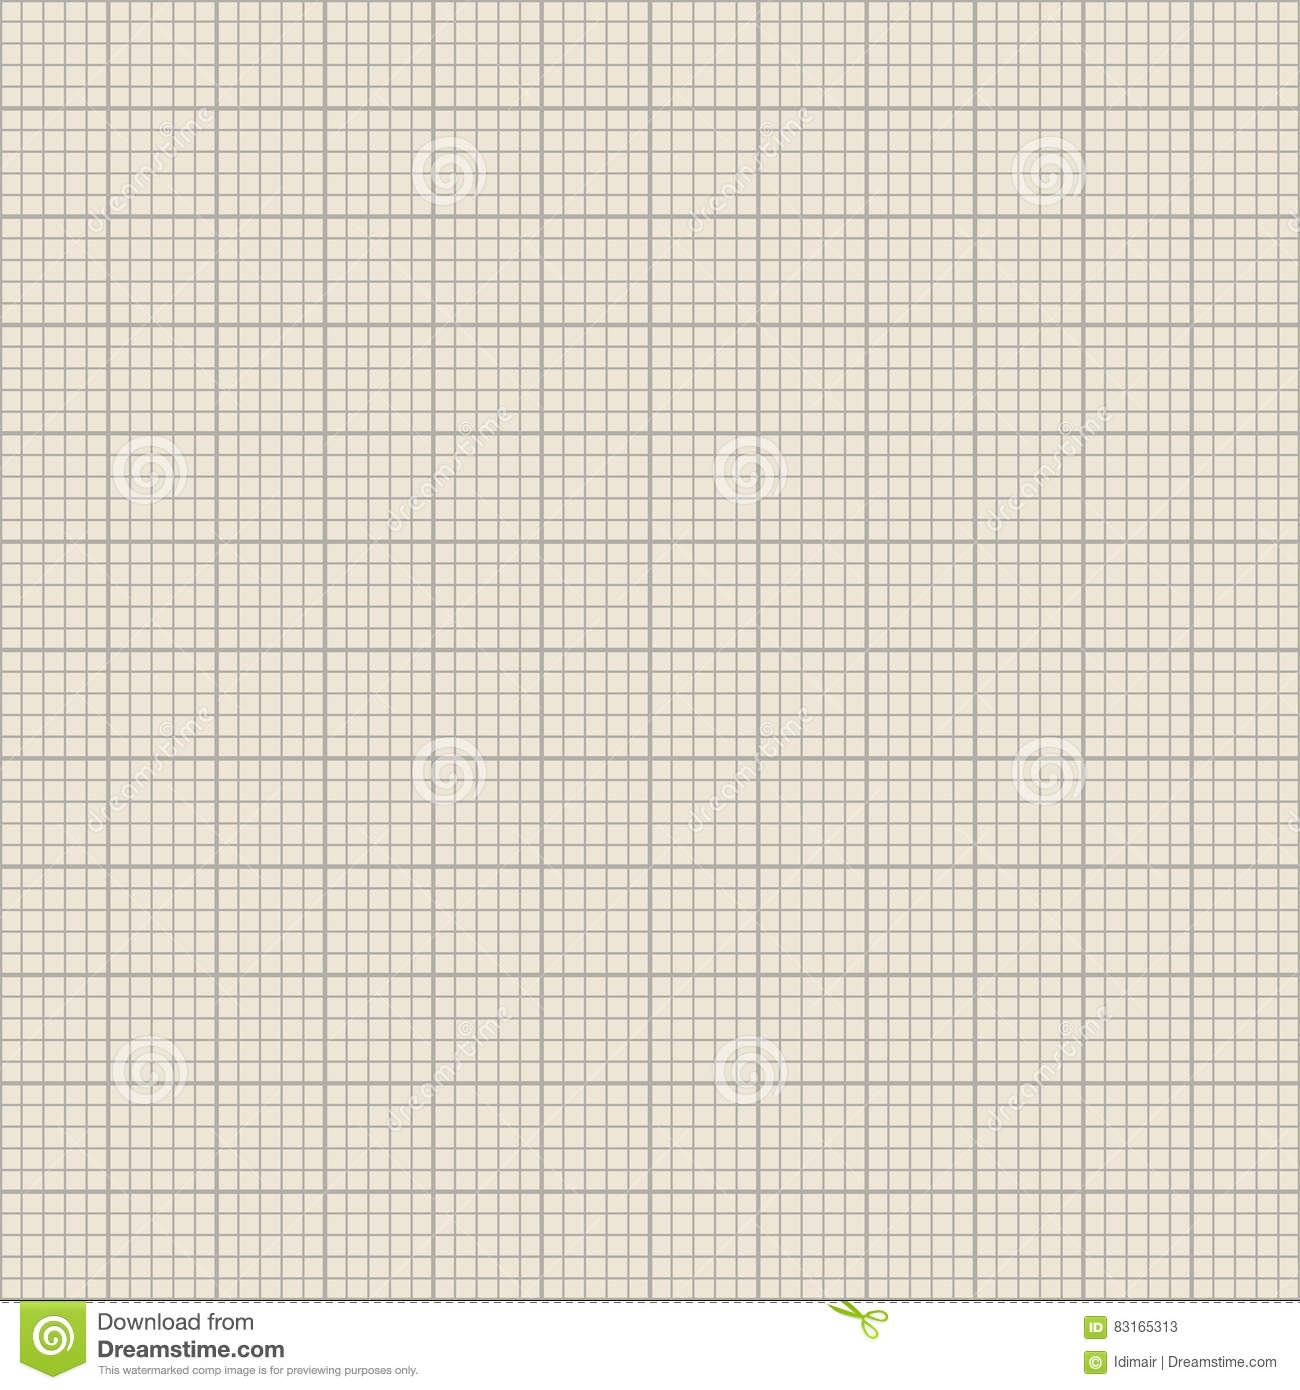 worksheet Graphing Grid blueprint grid background graphing paper for engineering in royalty free vector